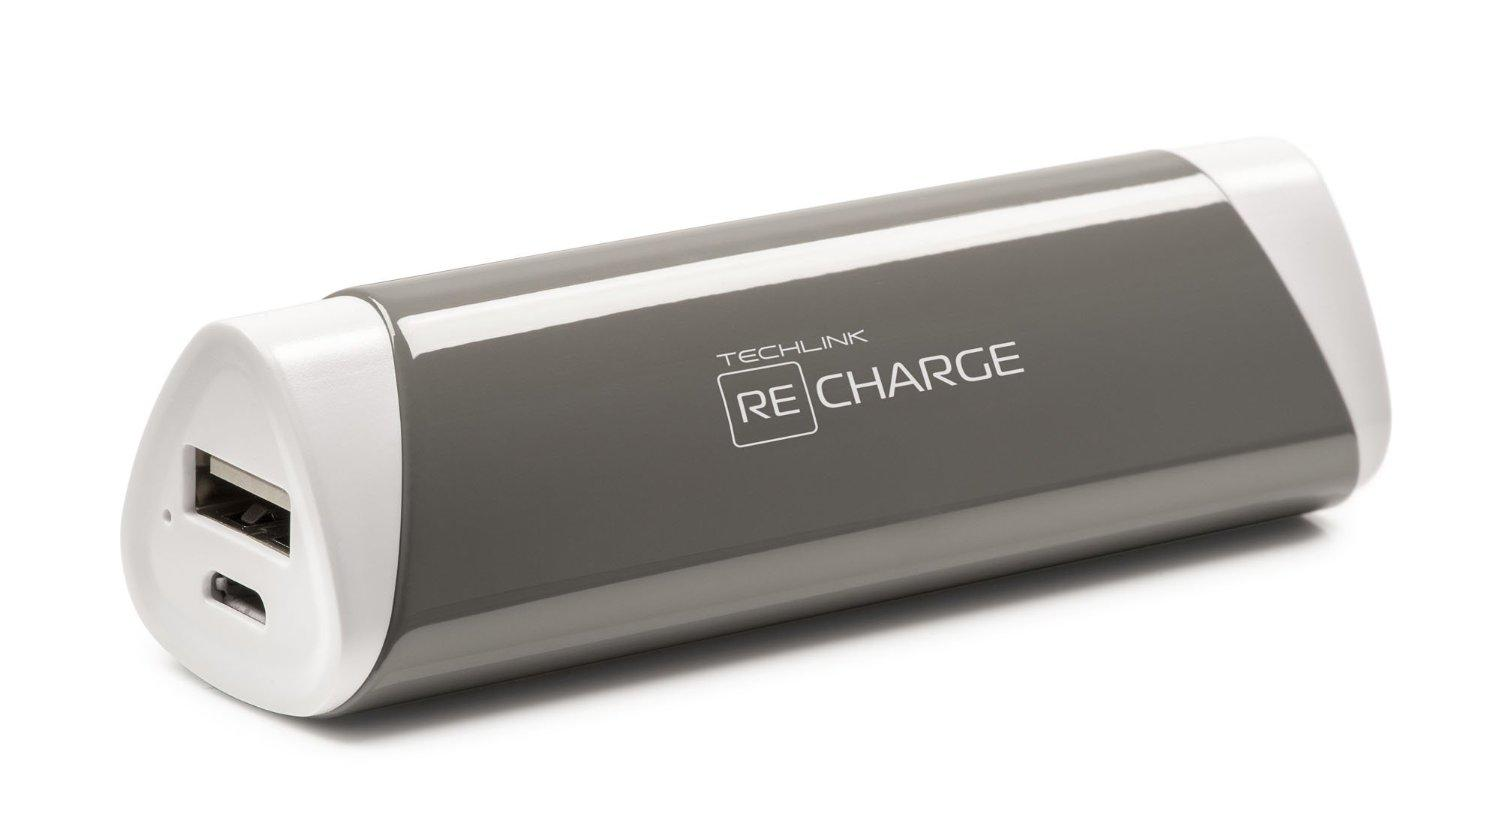 Techlink ReCharge 2600 Battery Power USB Portable Charger